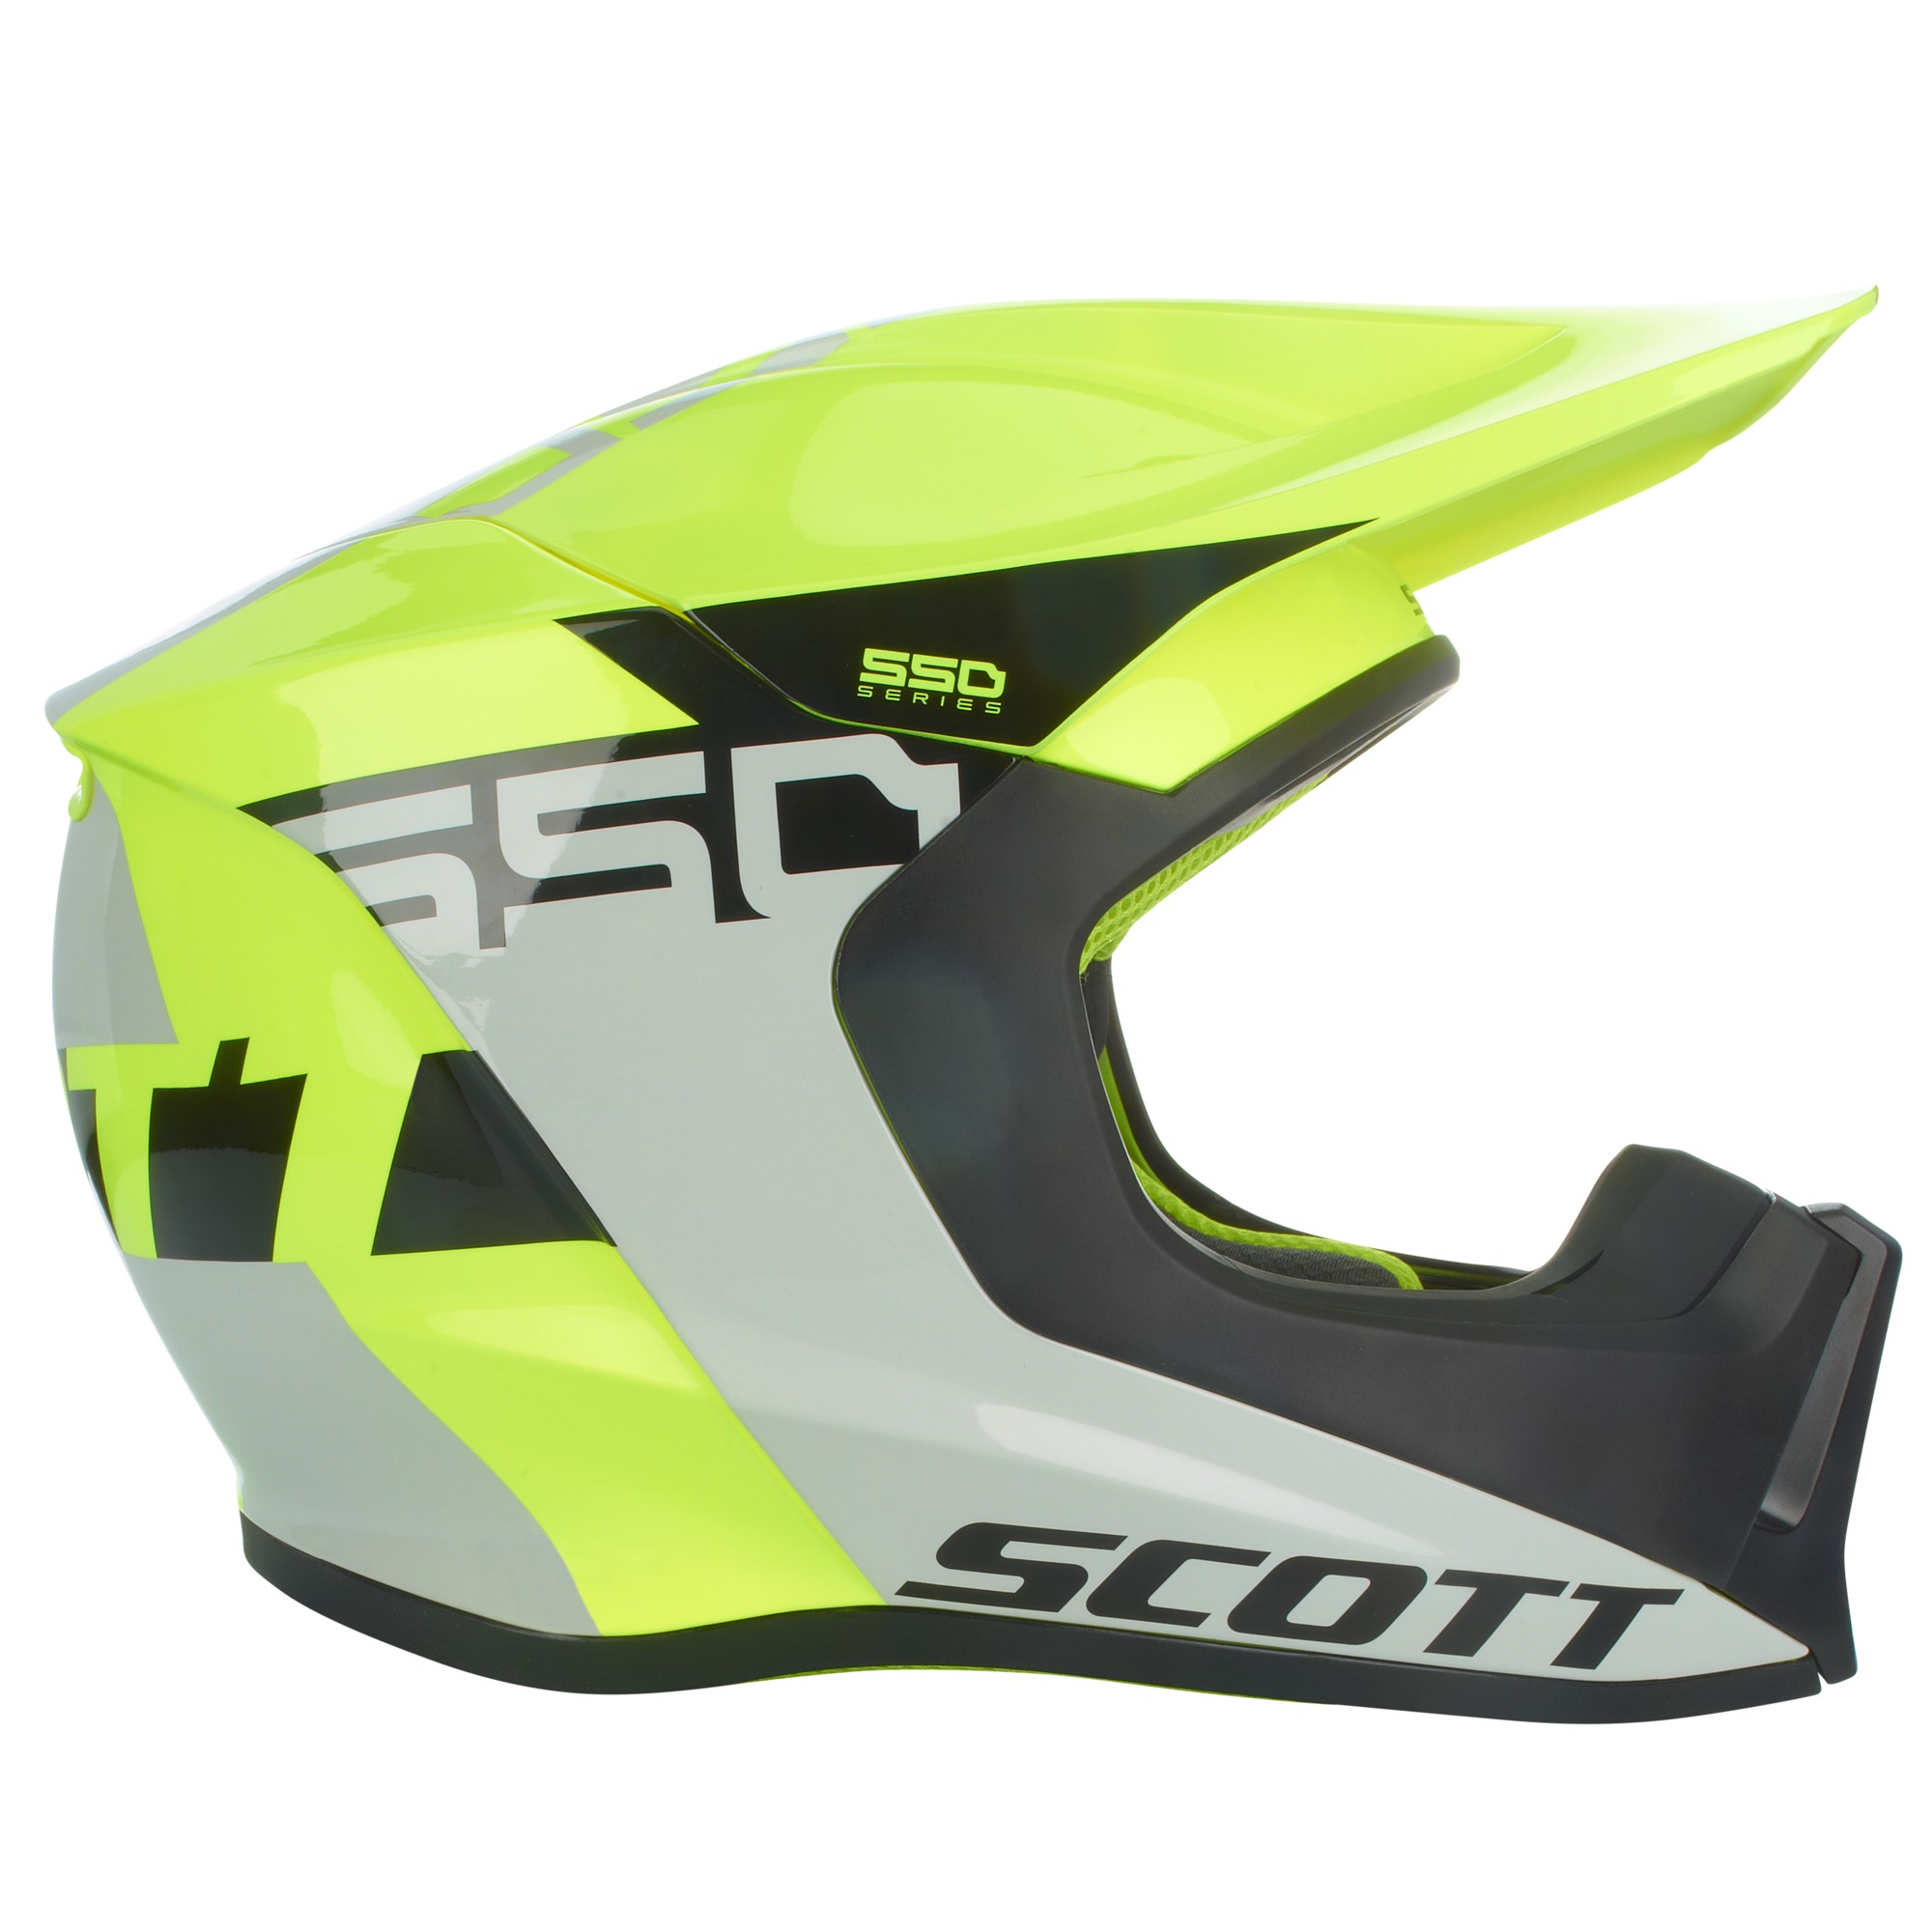 Casco SCOTT 550 Woodblock ECE